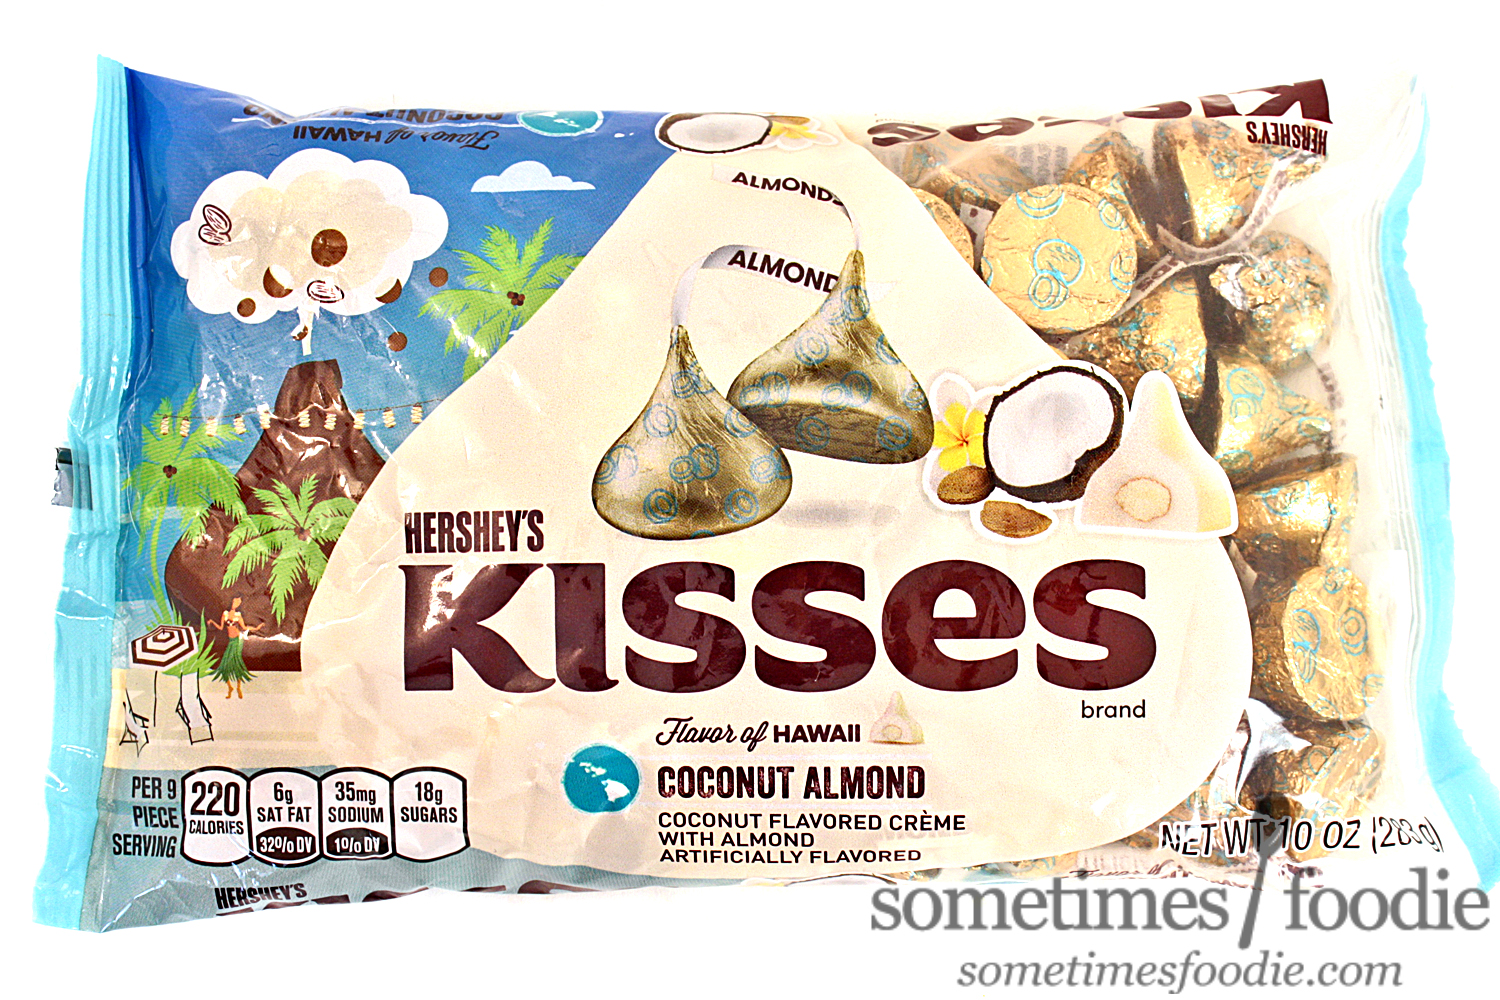 Sometimes Foodie: Coconut Almond Flavor of Hawaii Kisses - CVS